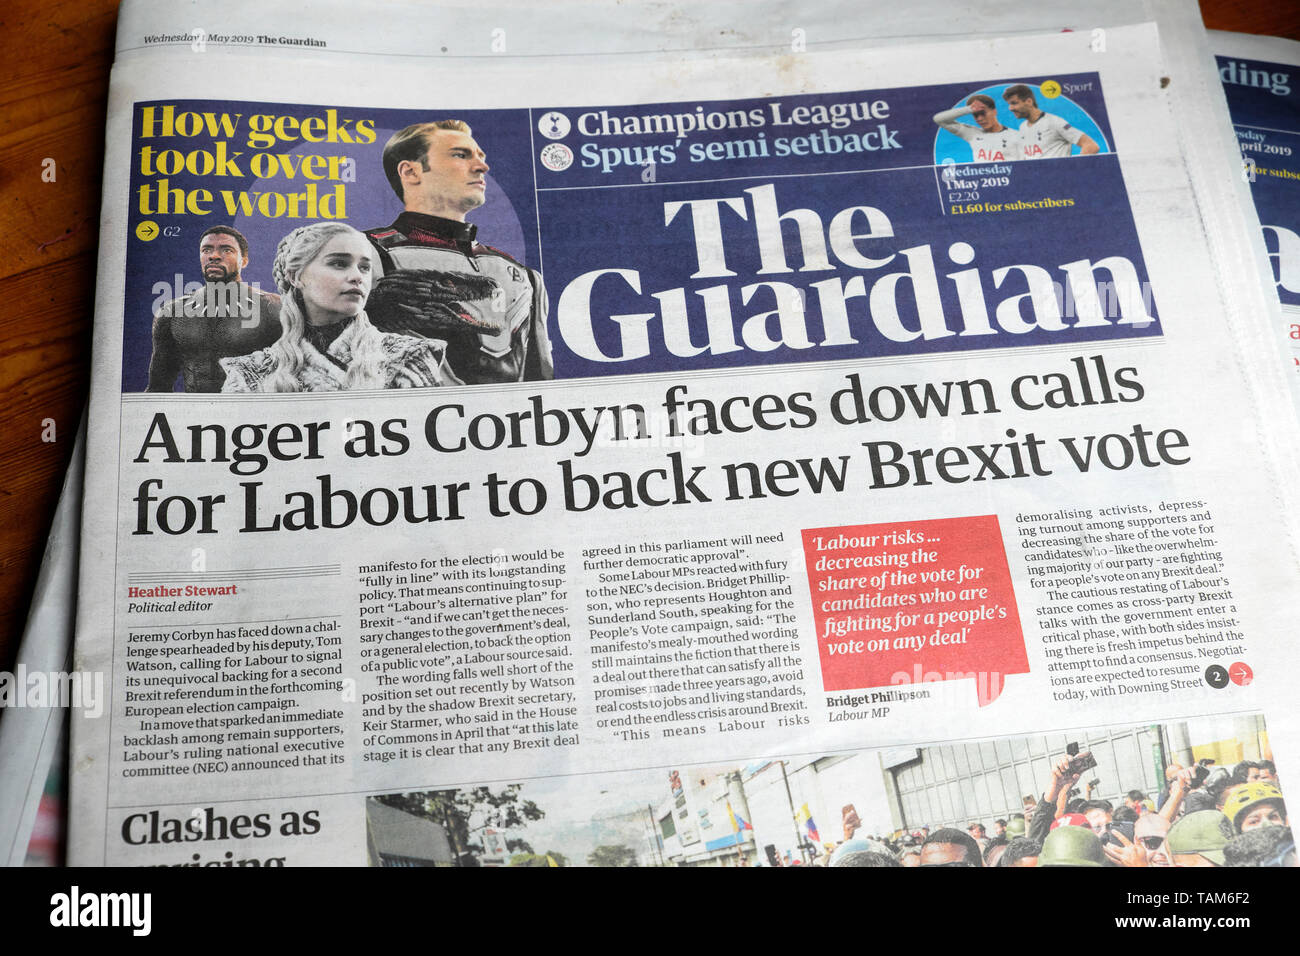 """Anger as Corbyn faces down calls for Labour to back new Brexit vote"" Guardian newspaper headline on 1 May 2019  London England UK Great Britain Stock Photo"